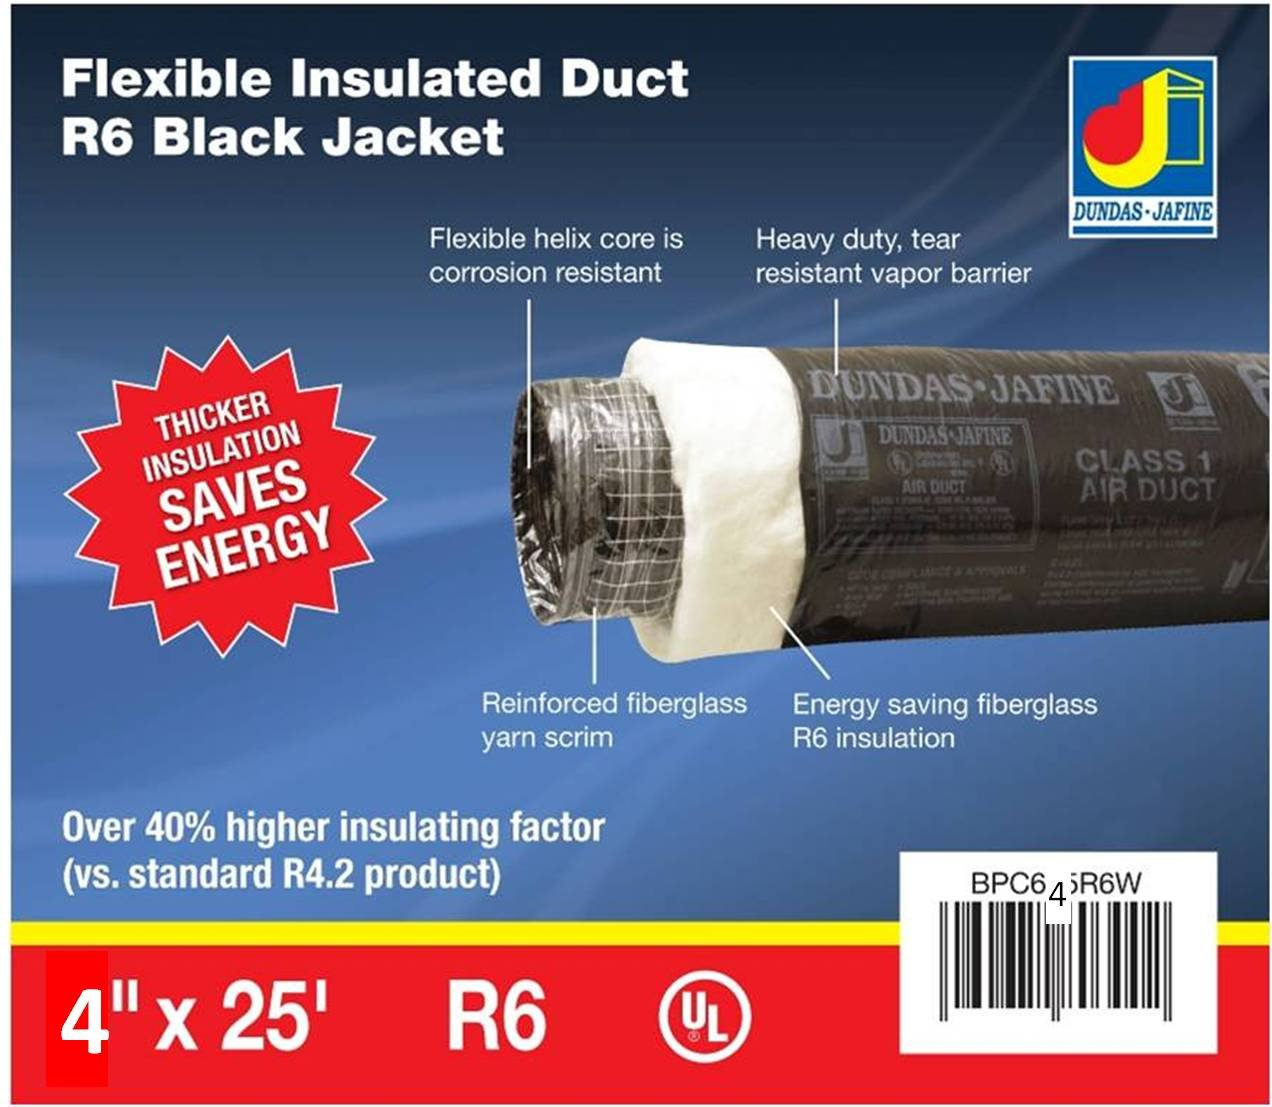 Dundas Jafine BPC425R6 Insulated Flexible Duct with Black Jacket, 4-Inches by 25-Feet